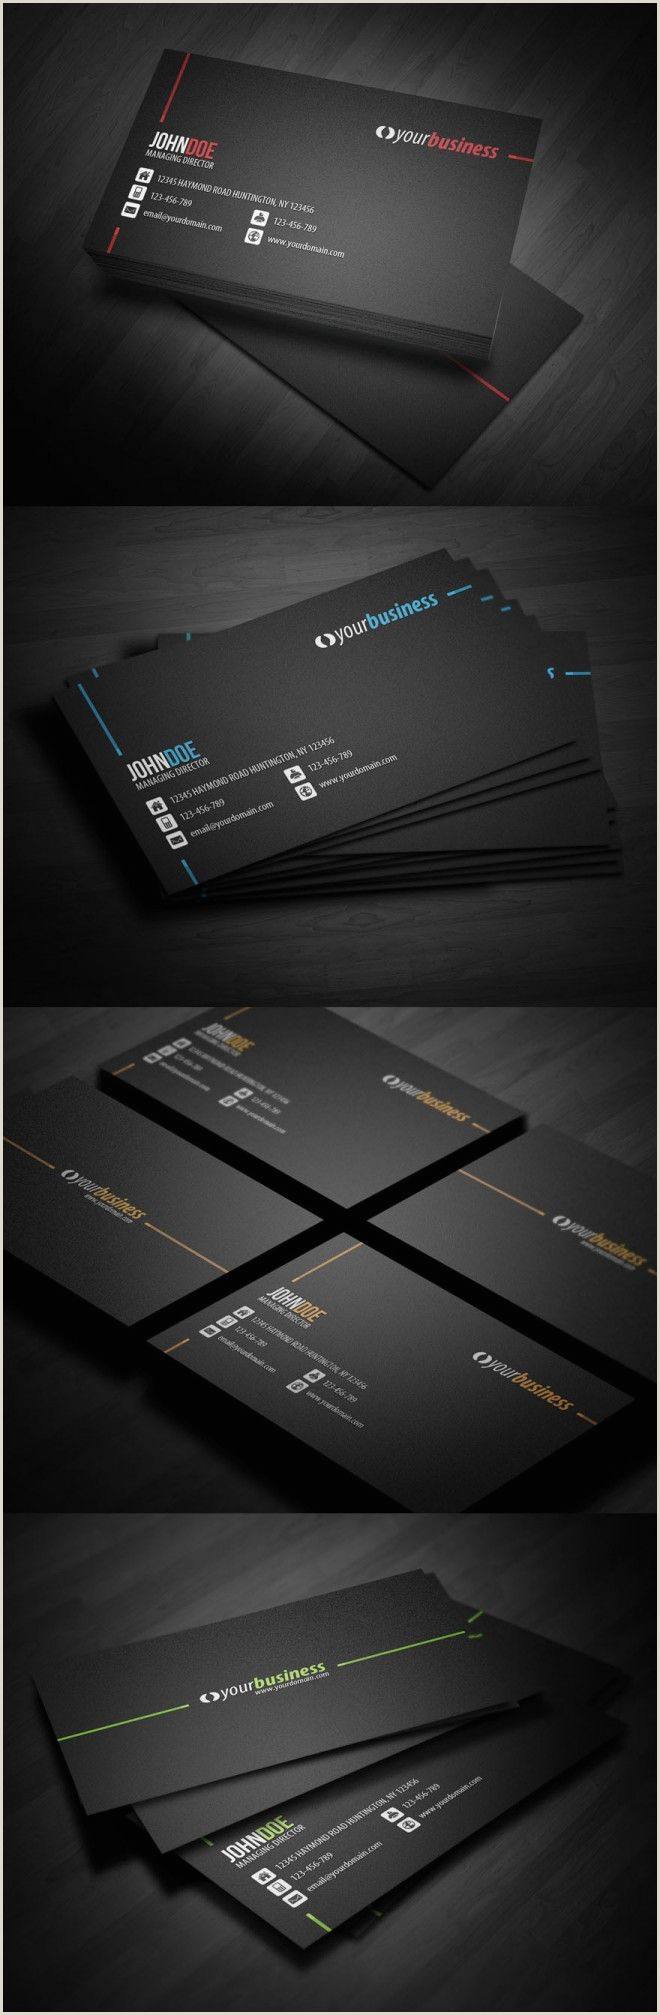 Different Types Of Business Cards 50 Creative Corporate Business Card Design Examples Design